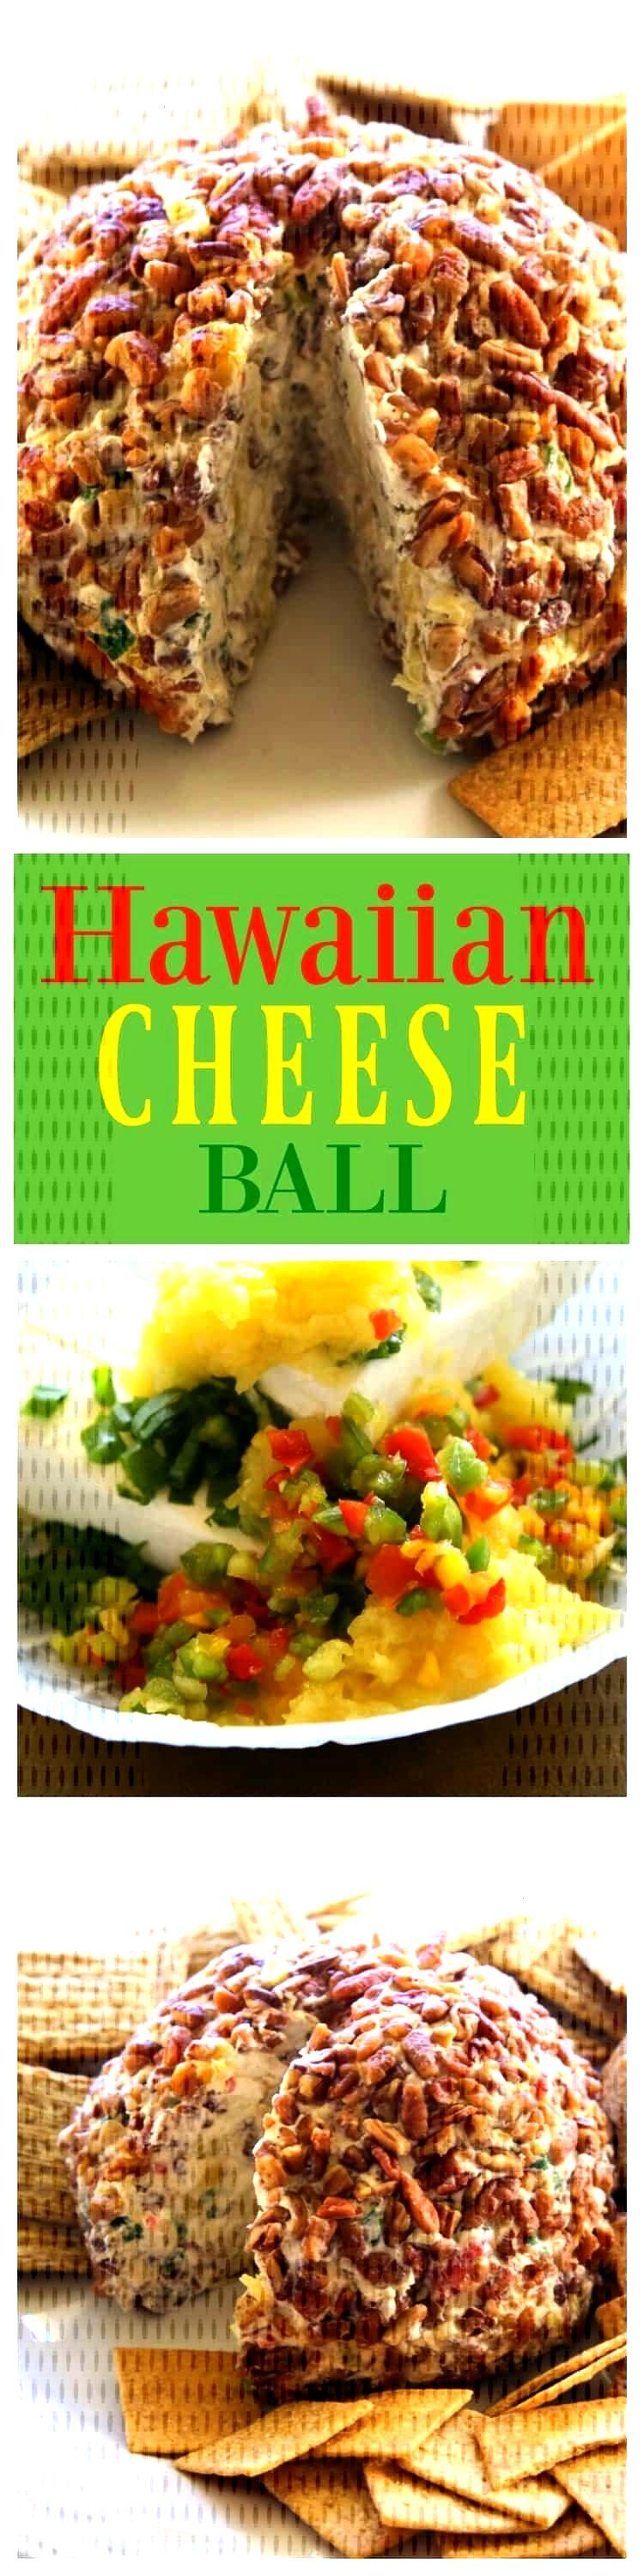 Hawaiian Cheese Ball - a cream cheese ball with crushed pineapple, green onions, and bell pepper. T